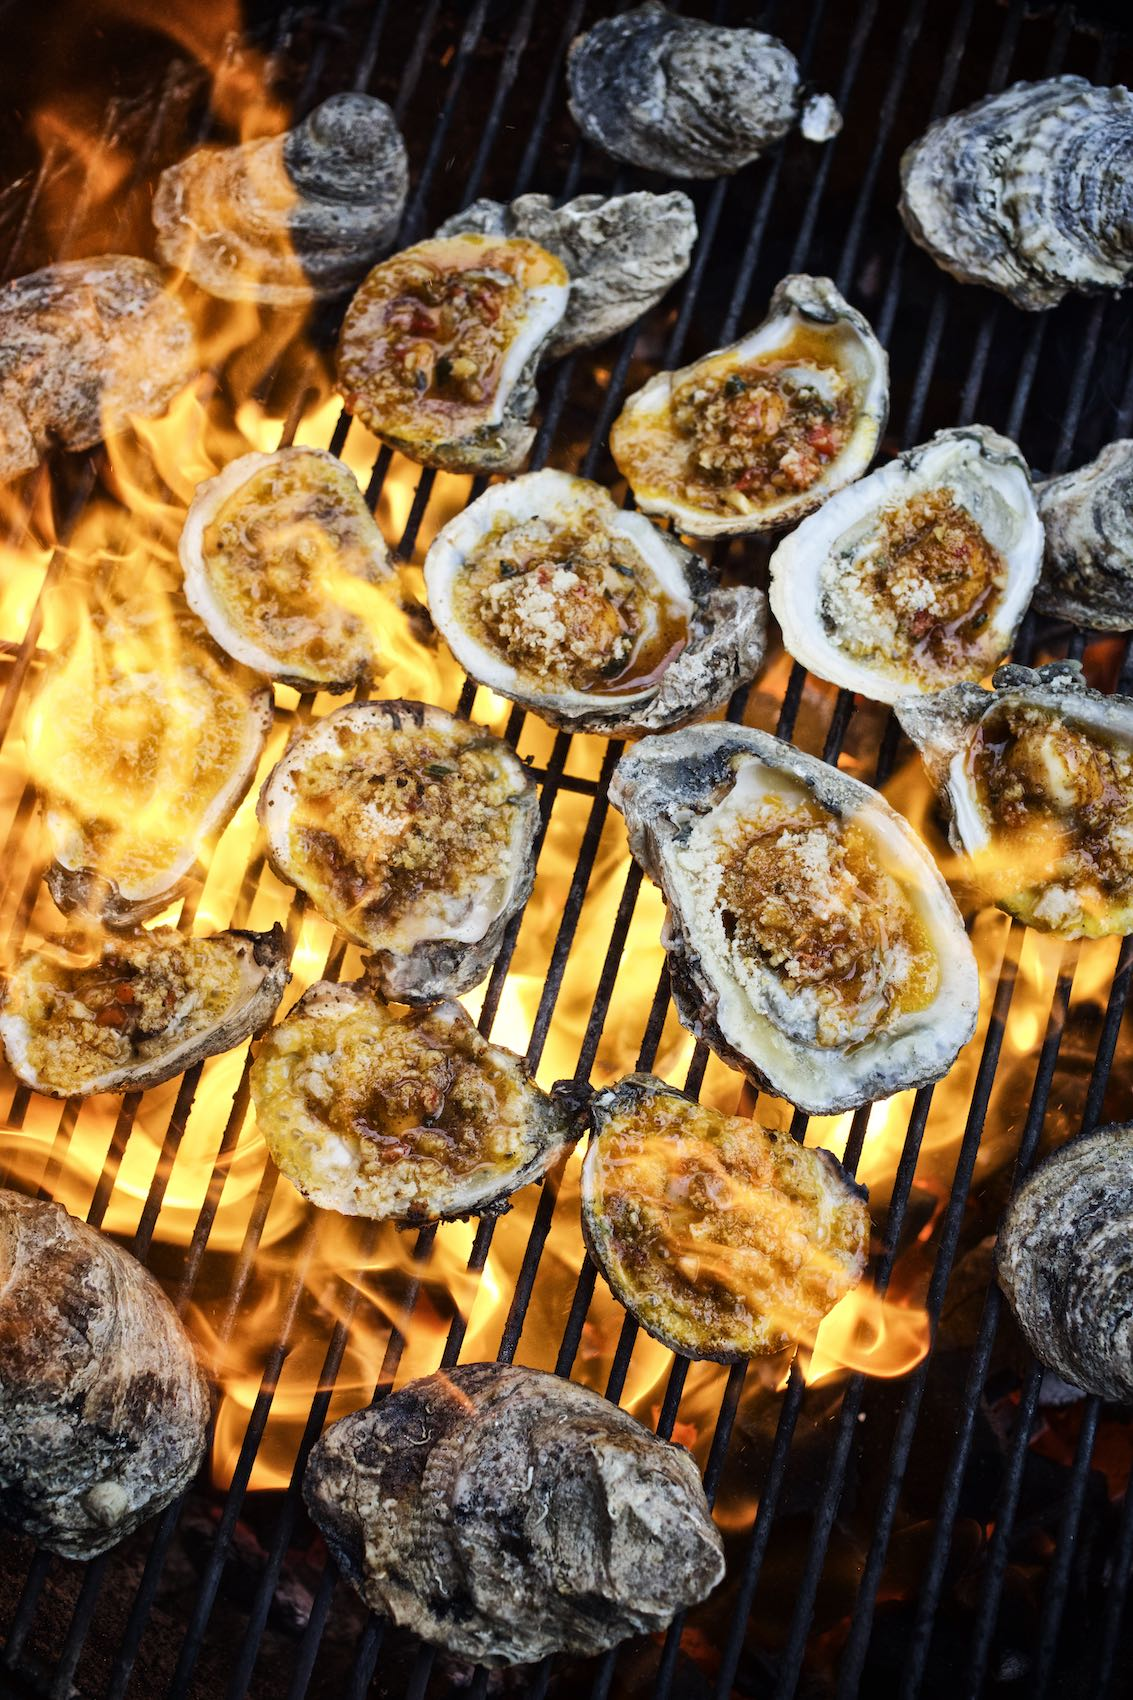 Jody Horton Photography - Multiple oysters cooking on a wood fired grill.